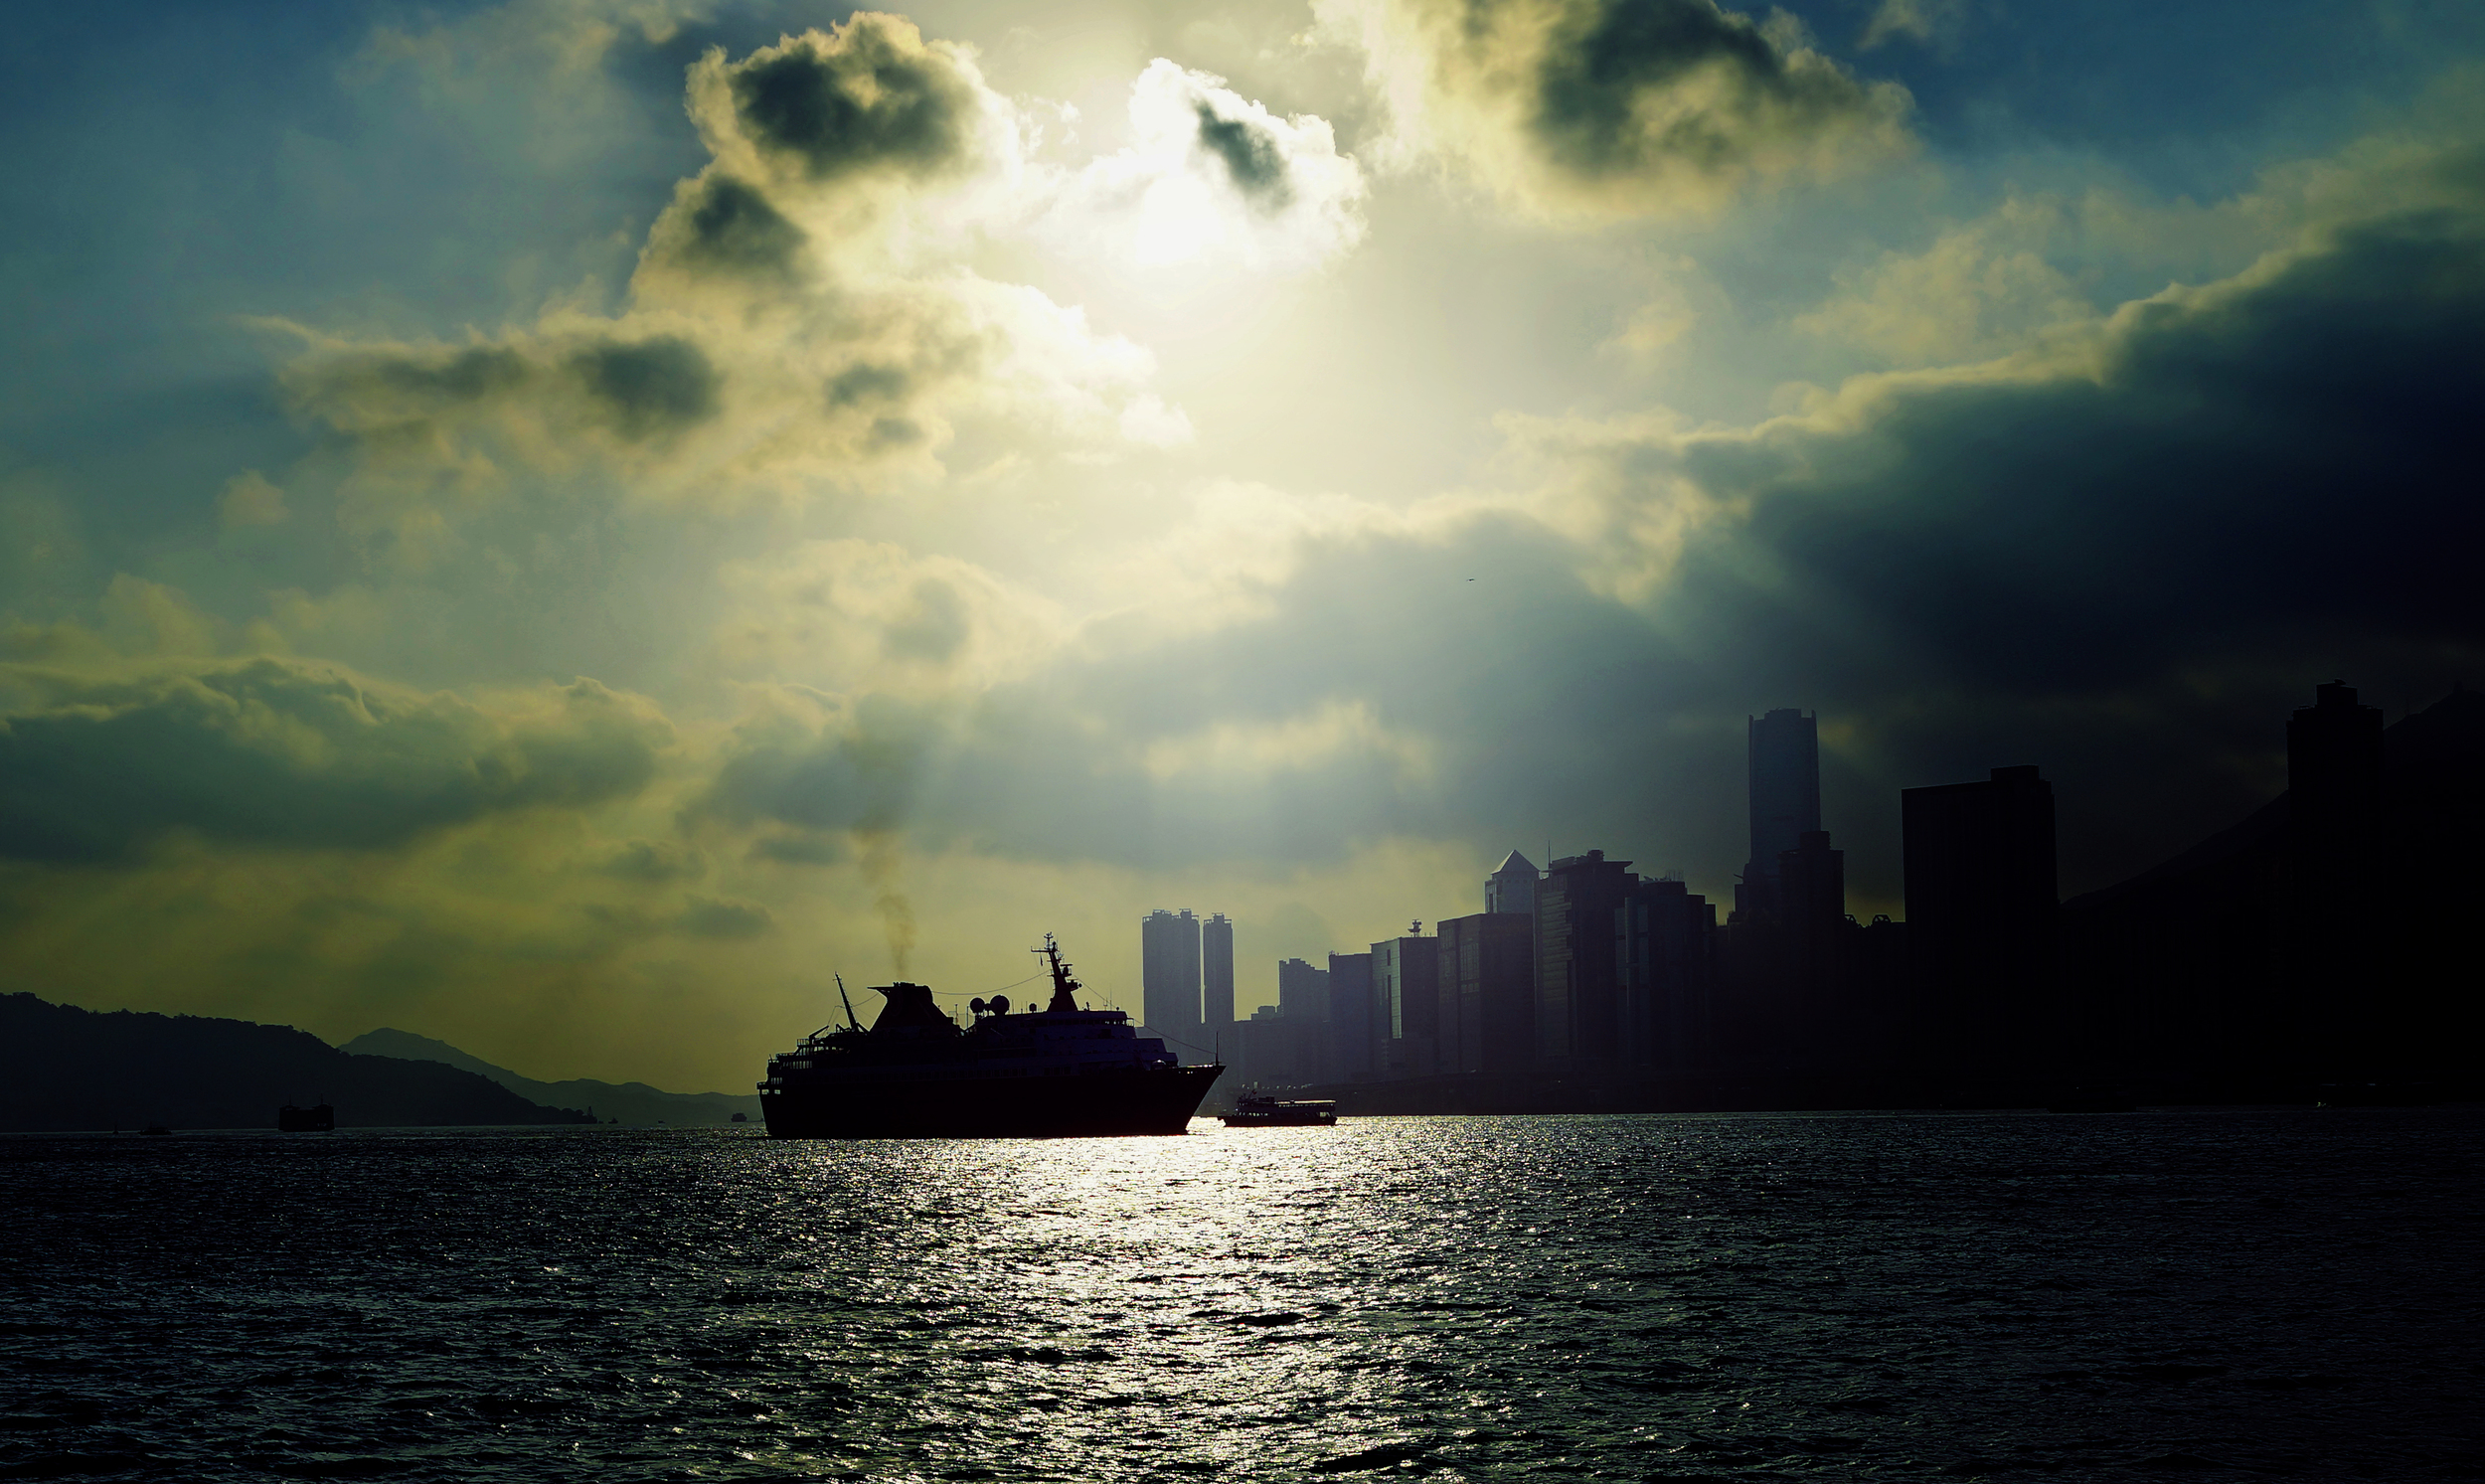 """I am not often in Hung Hom, Kowloon at 8am so it was nice to get an """"almost"""" sunrise image showing one of our 8 gambling ships returning to Hong Kong."""